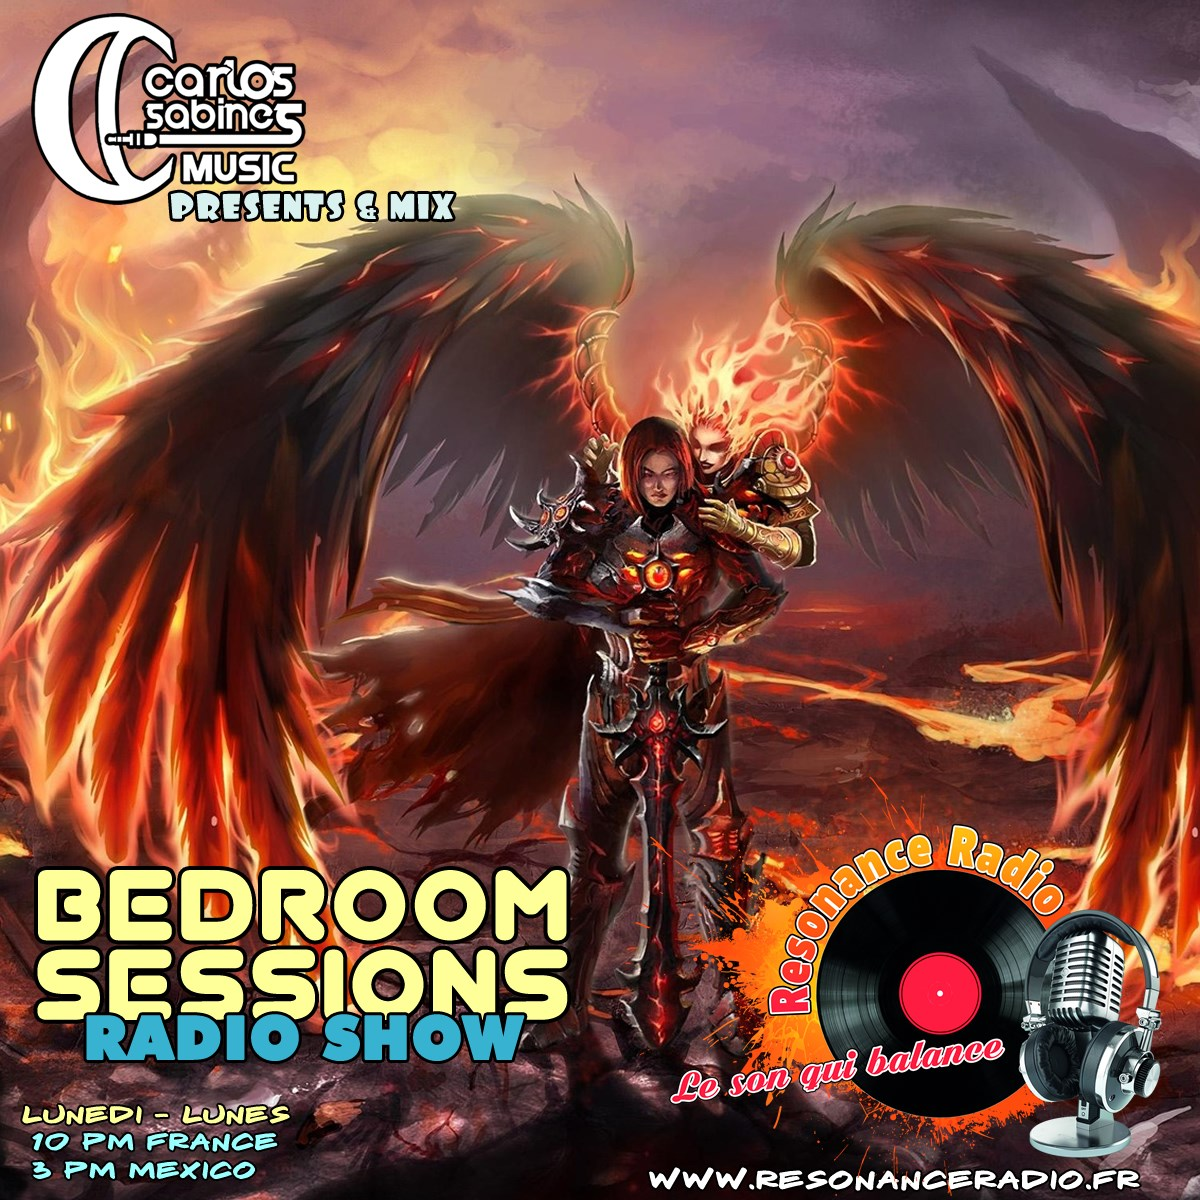 Coming up my #BedroomSessionsRadioShow Transmisión desde #Francia Broadcast from #France    http://www.resonanceradio.fr    Lunedi 10 pm France  Lunes 3 pm #México   #Radio #RadioShow #Trance #TranceNights #RT #DJLifepic.twitter.com/25pbZudGgN